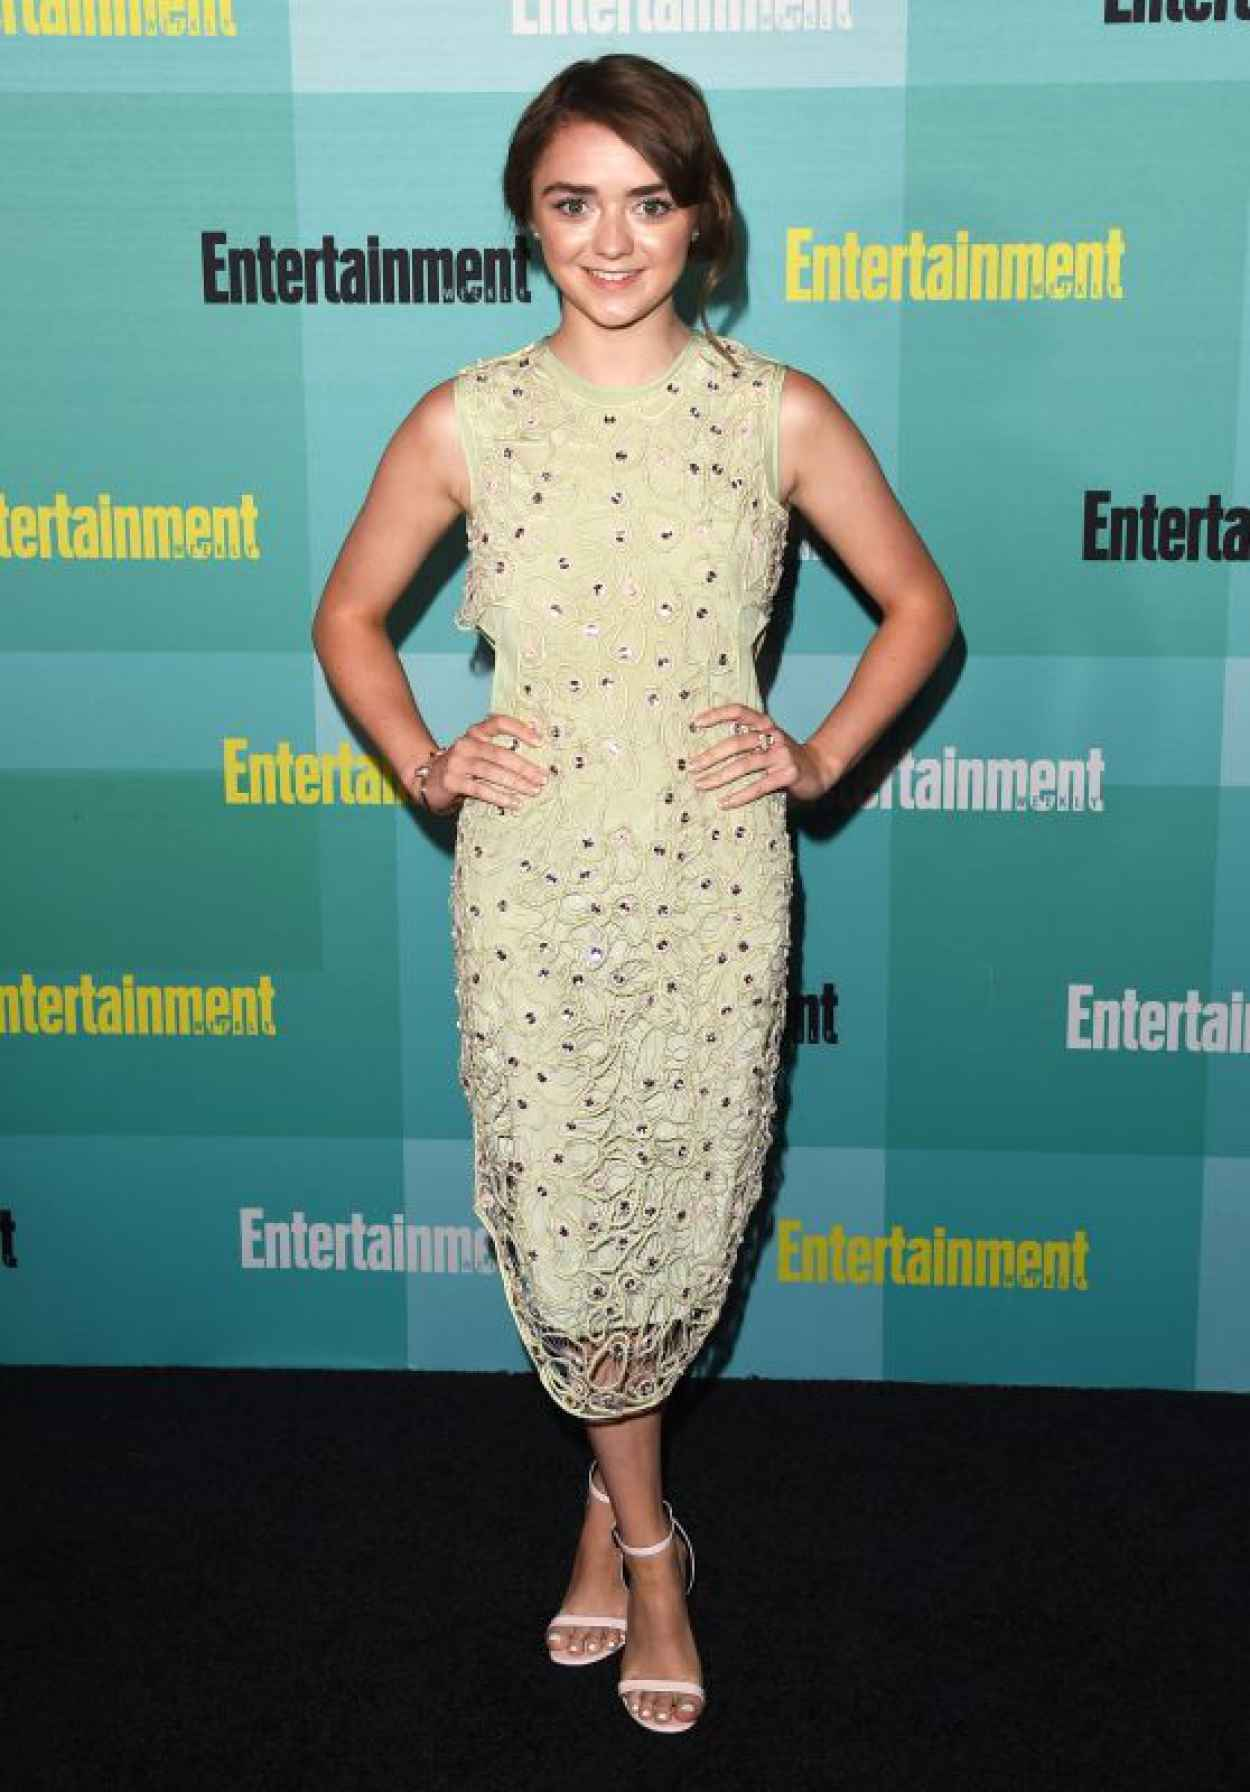 Maisie Williams - EW Party at Comic-Con in San Diego, July 2015-1